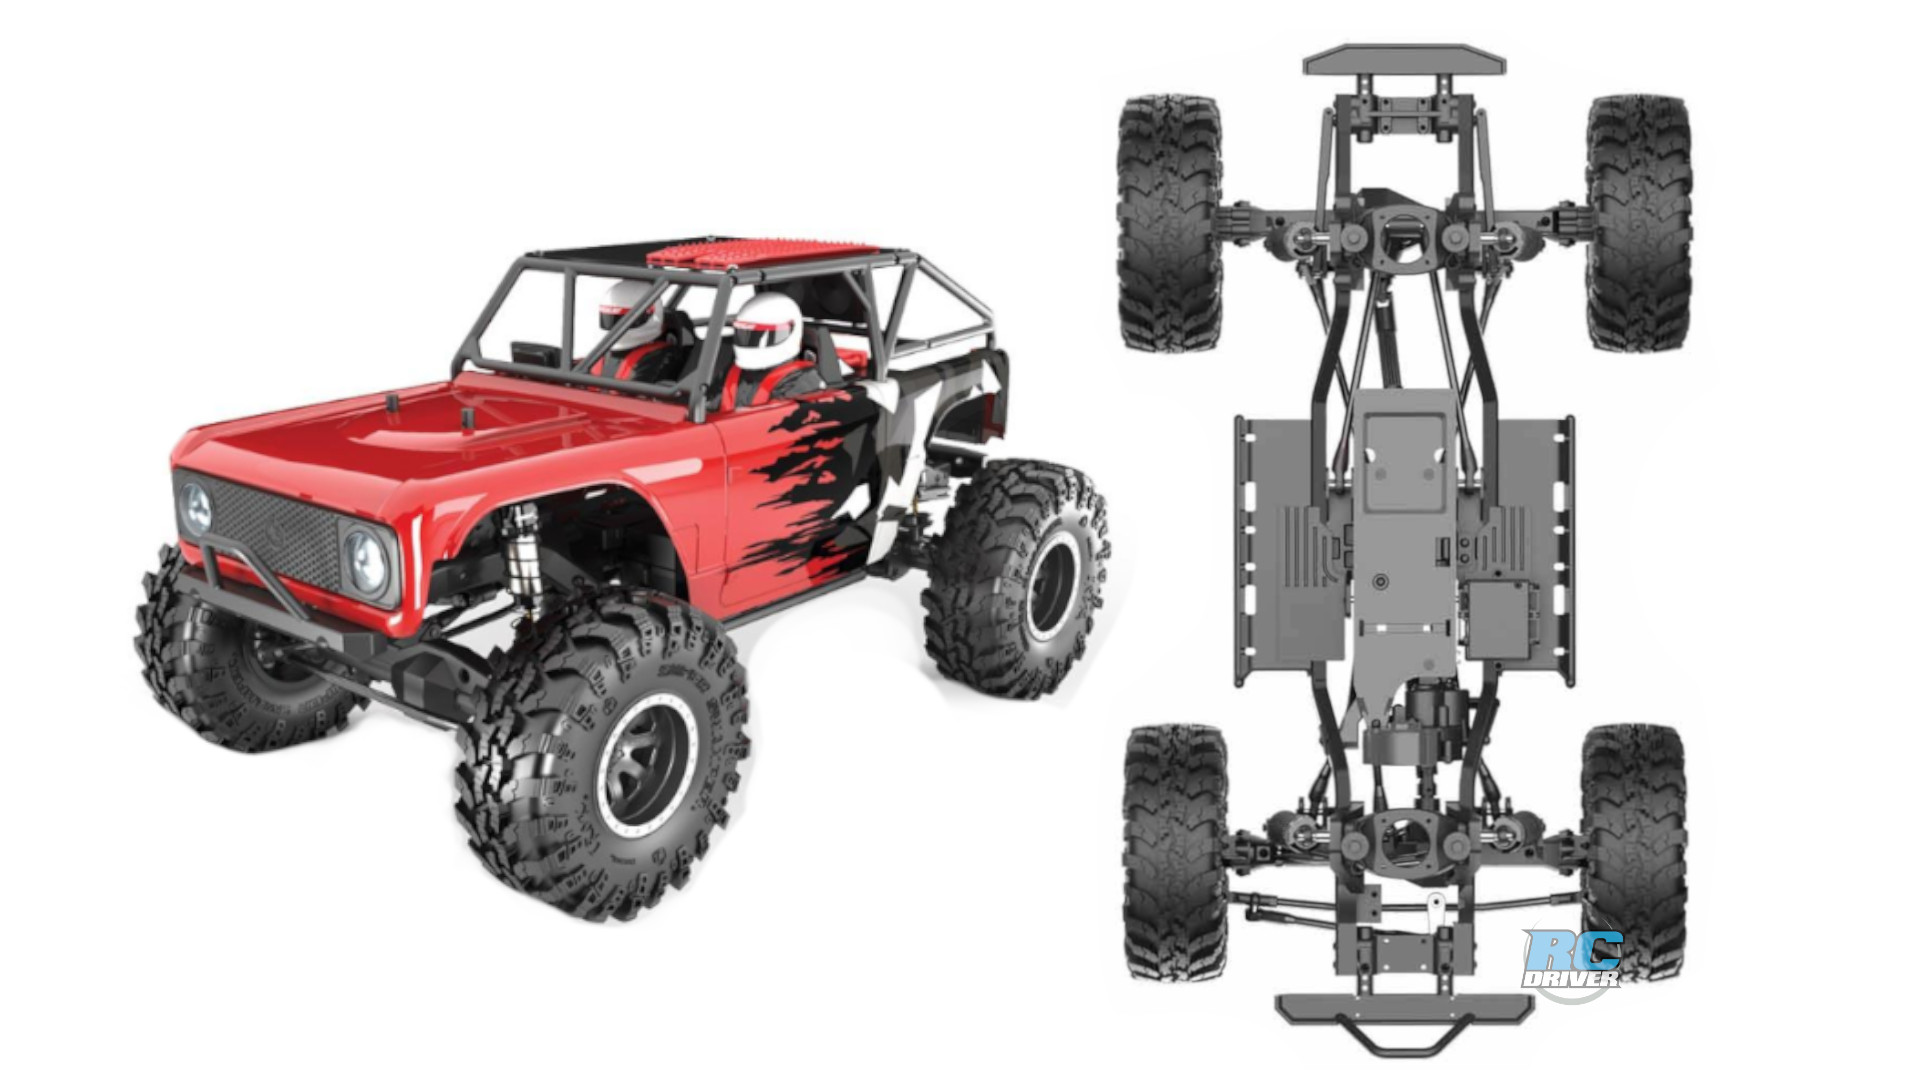 Redcat Wendigo Builder's Kit announced